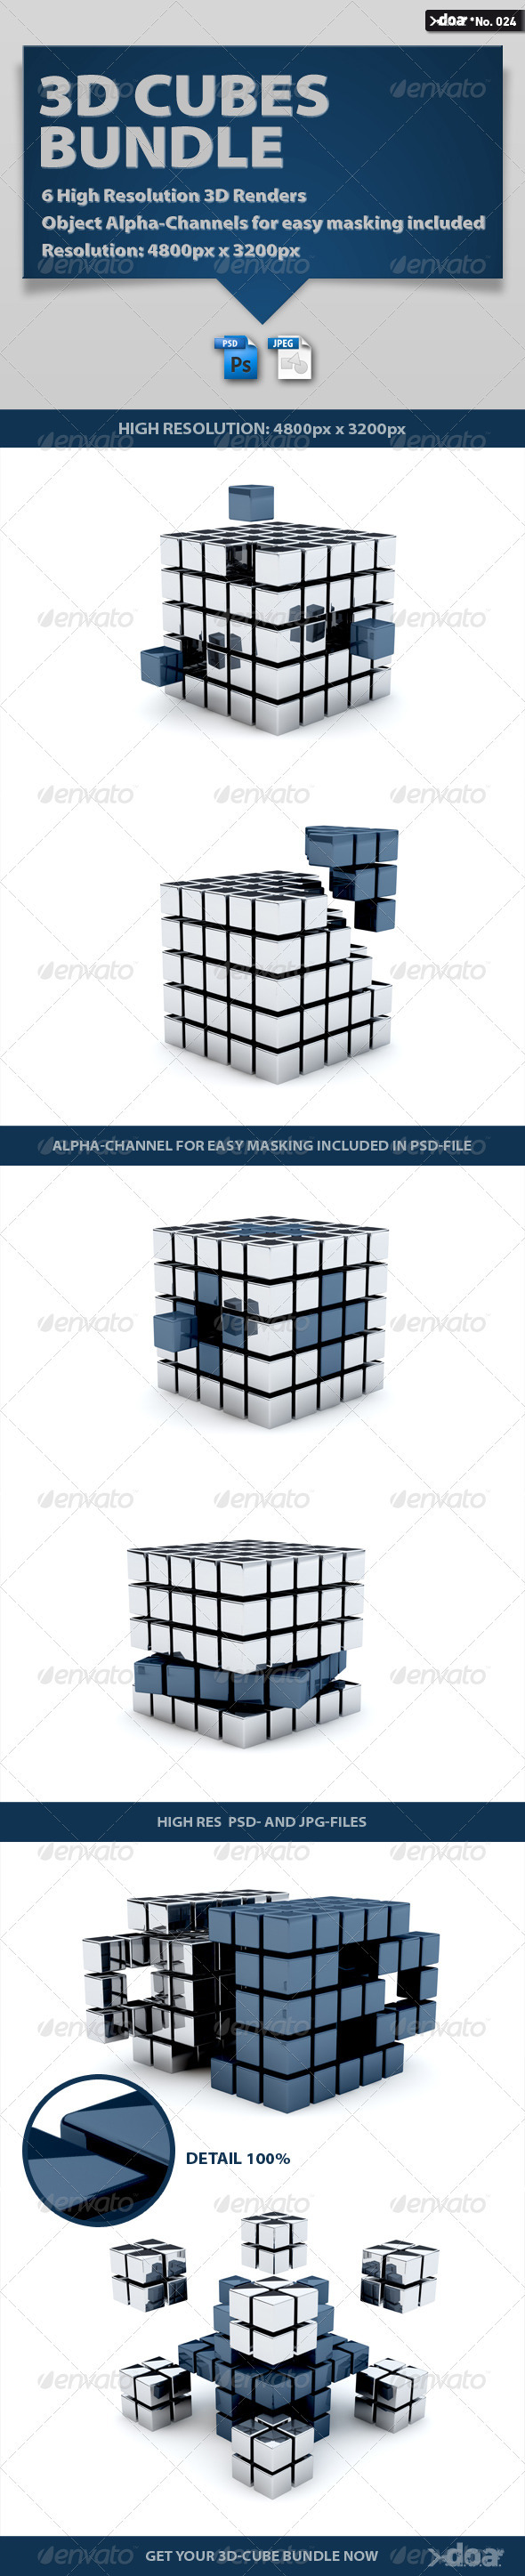 3D Cubes Bundle - 3D Renders Graphics